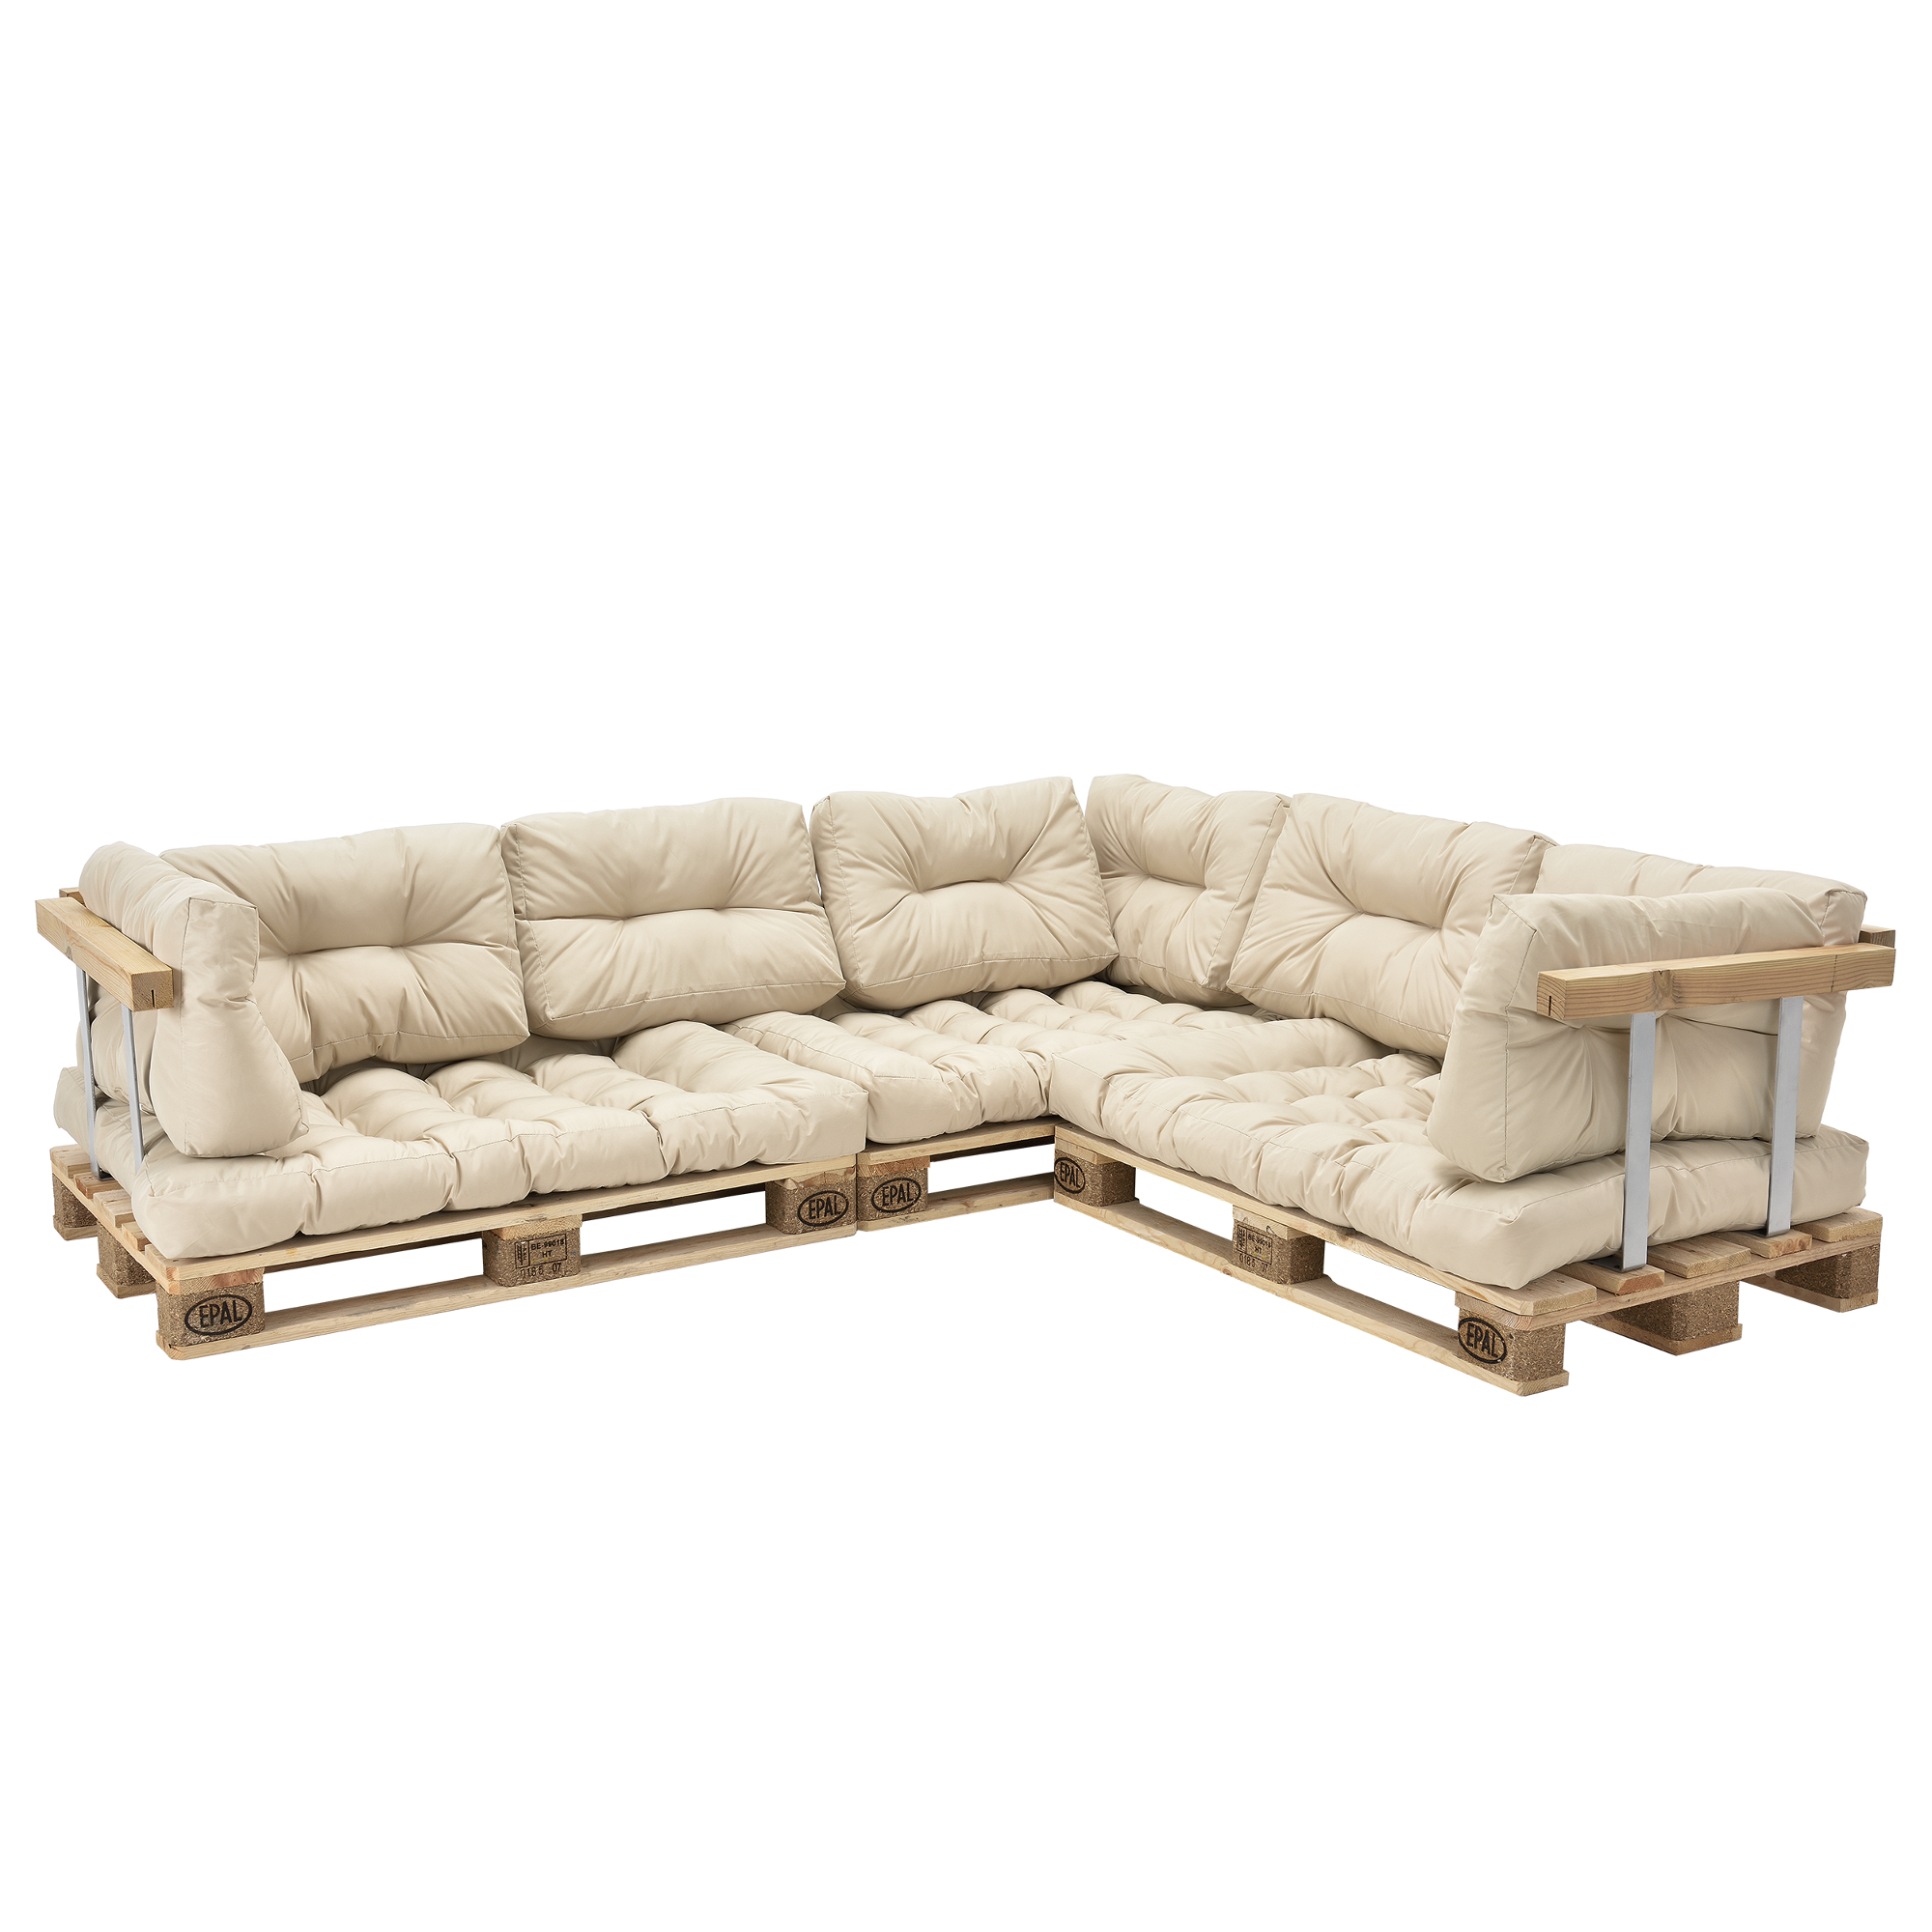 euro pallets sofa pillow beige corner sofa with pallets pads backrest ebay. Black Bedroom Furniture Sets. Home Design Ideas